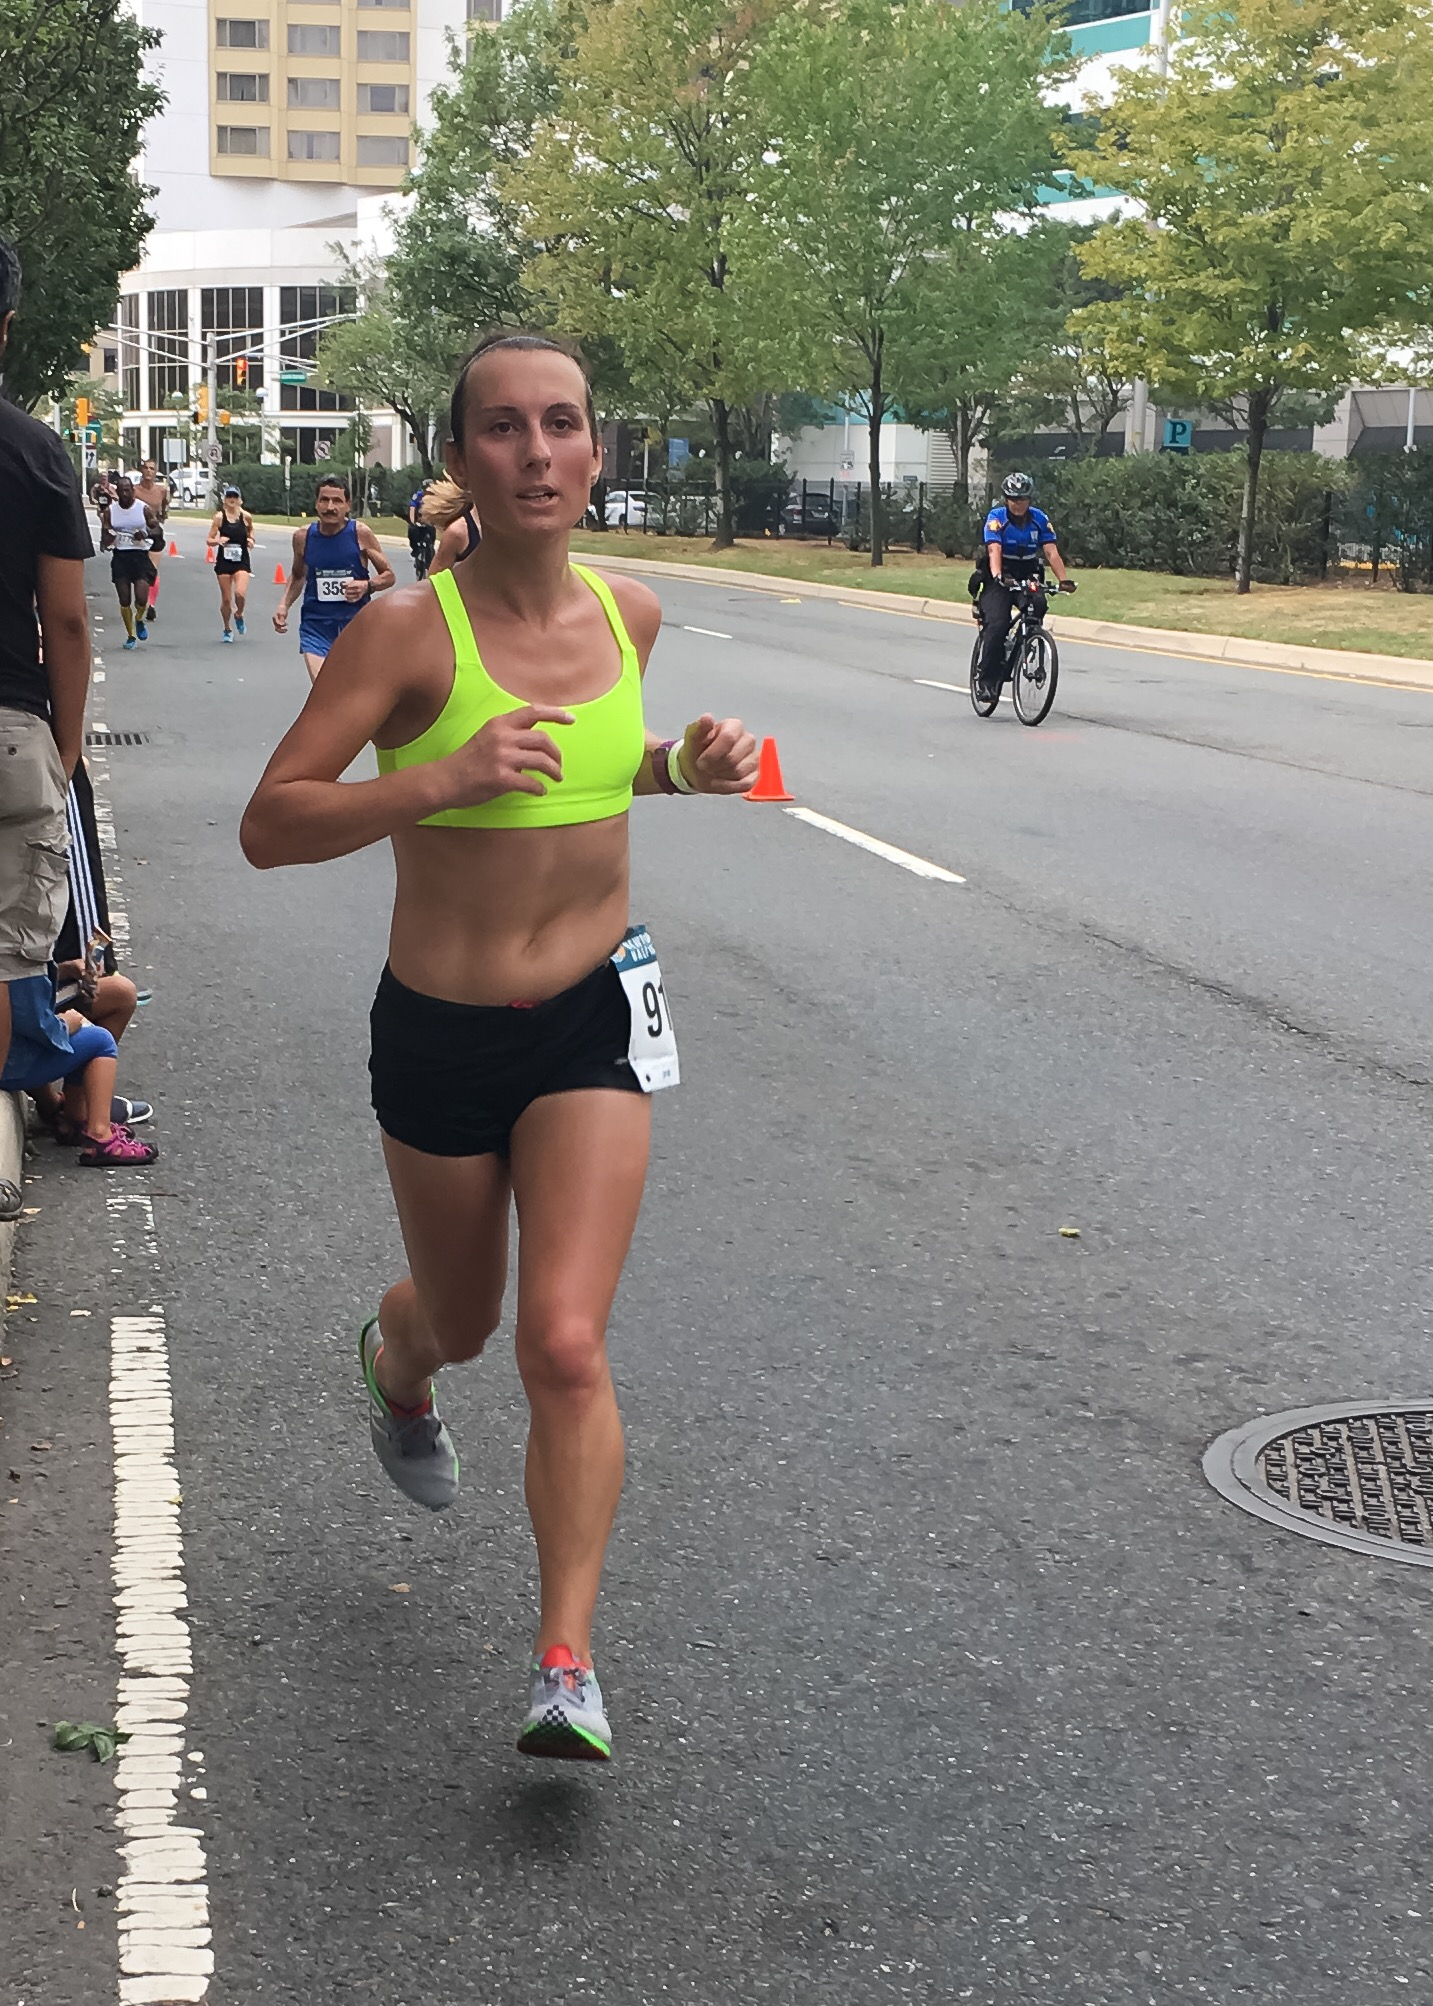 Running a new half marathon PR in just a sports bra!